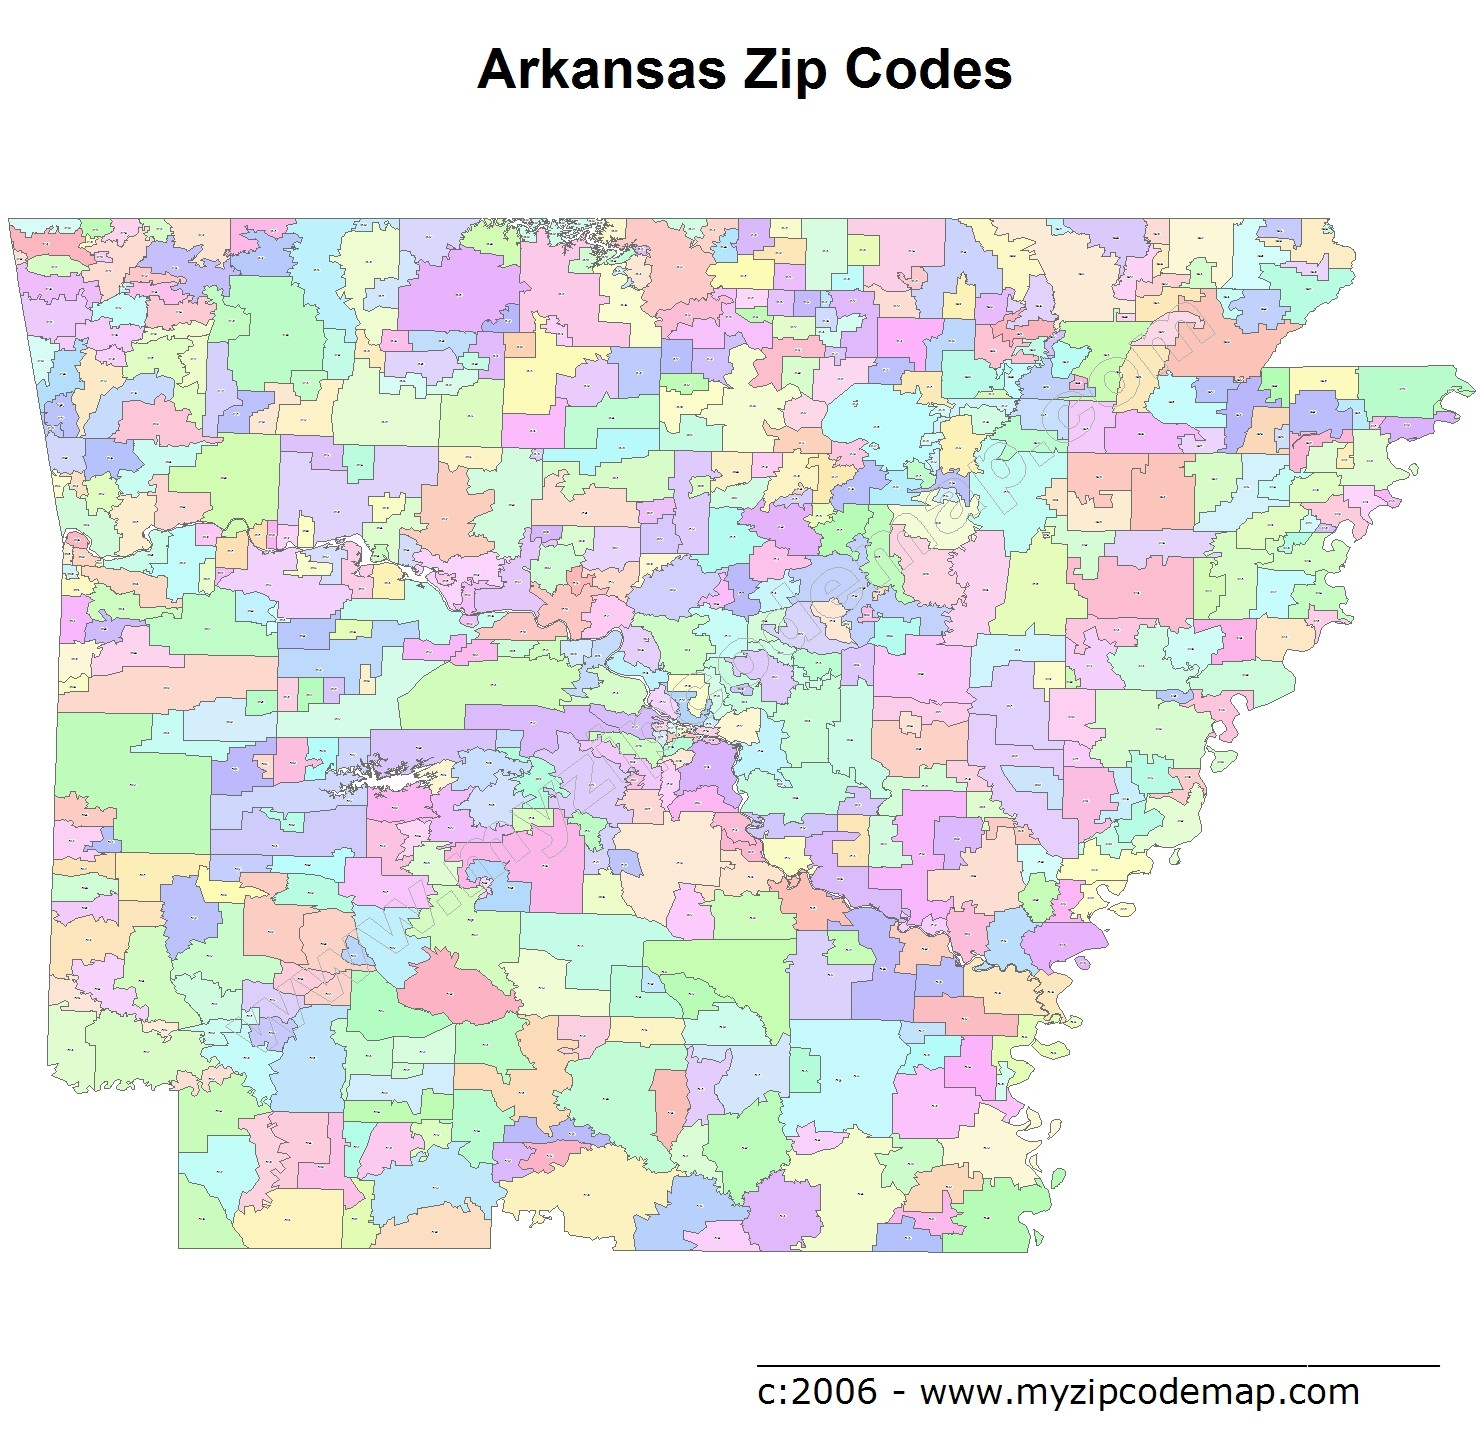 rogers arkansas zip code map Arkansas Zip Code Maps Free Arkansas Zip Code Maps rogers arkansas zip code map